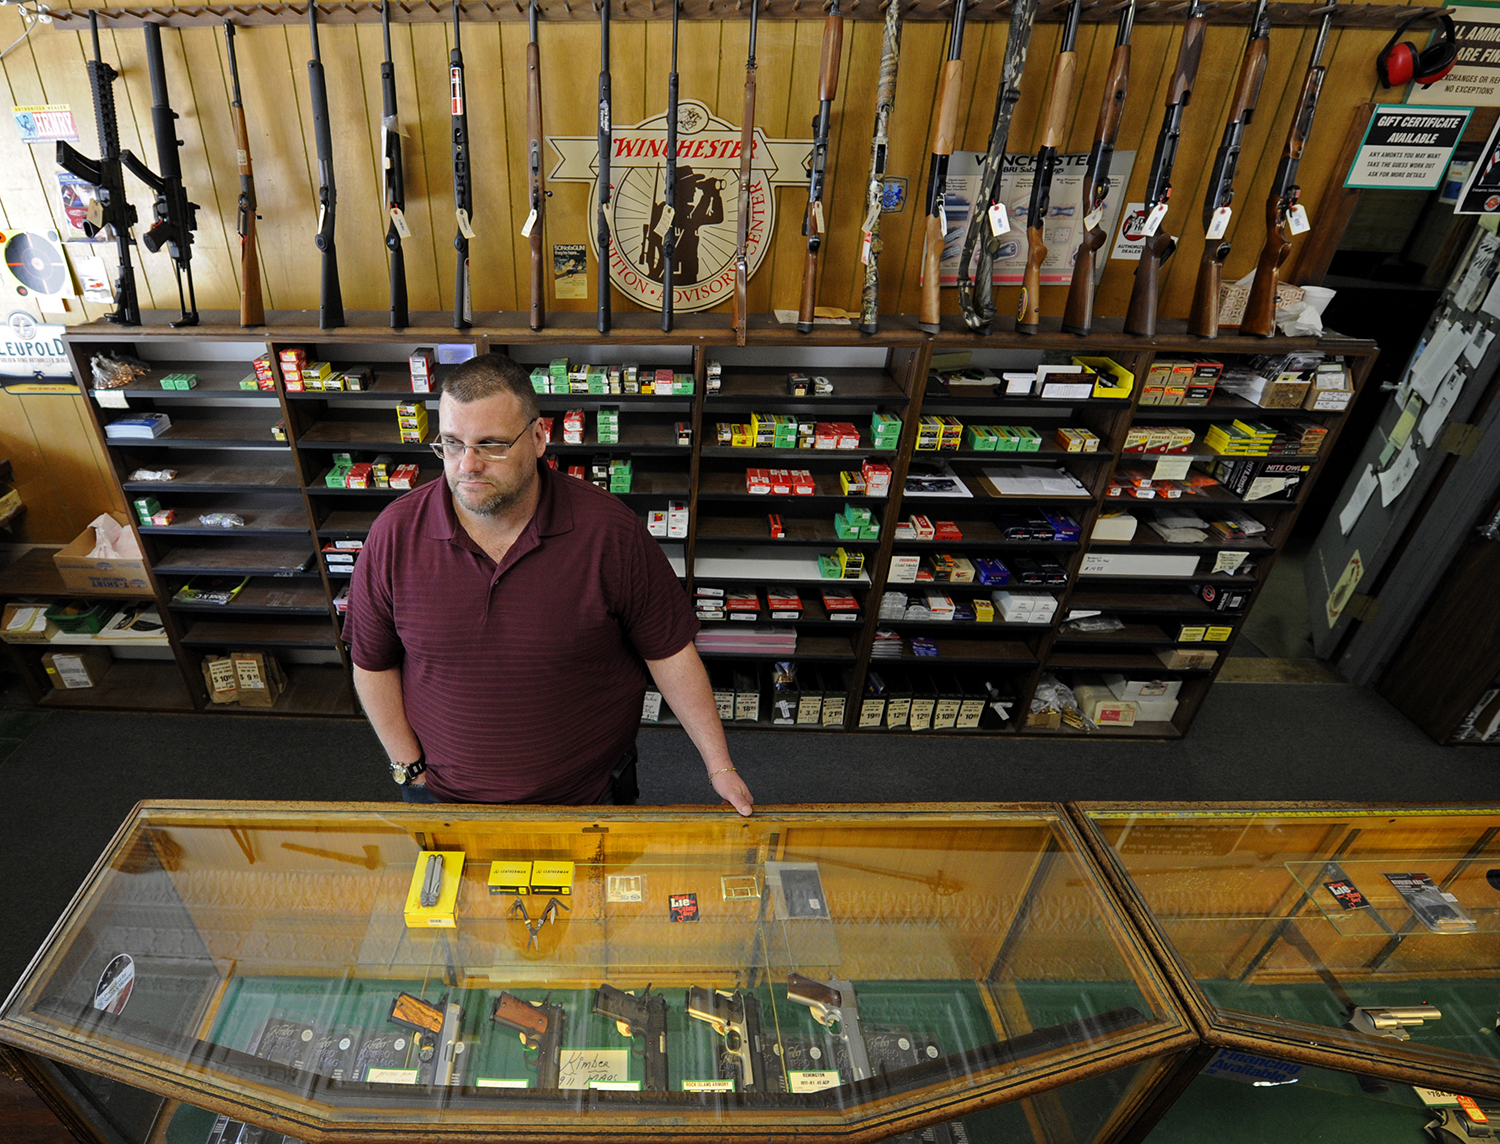 Keith Savage, manager of Braverman Arms in Wilkinsburg, said he does not believe the state should charge for background checks. (Photo by Connor Mulvaney / PublicSource)